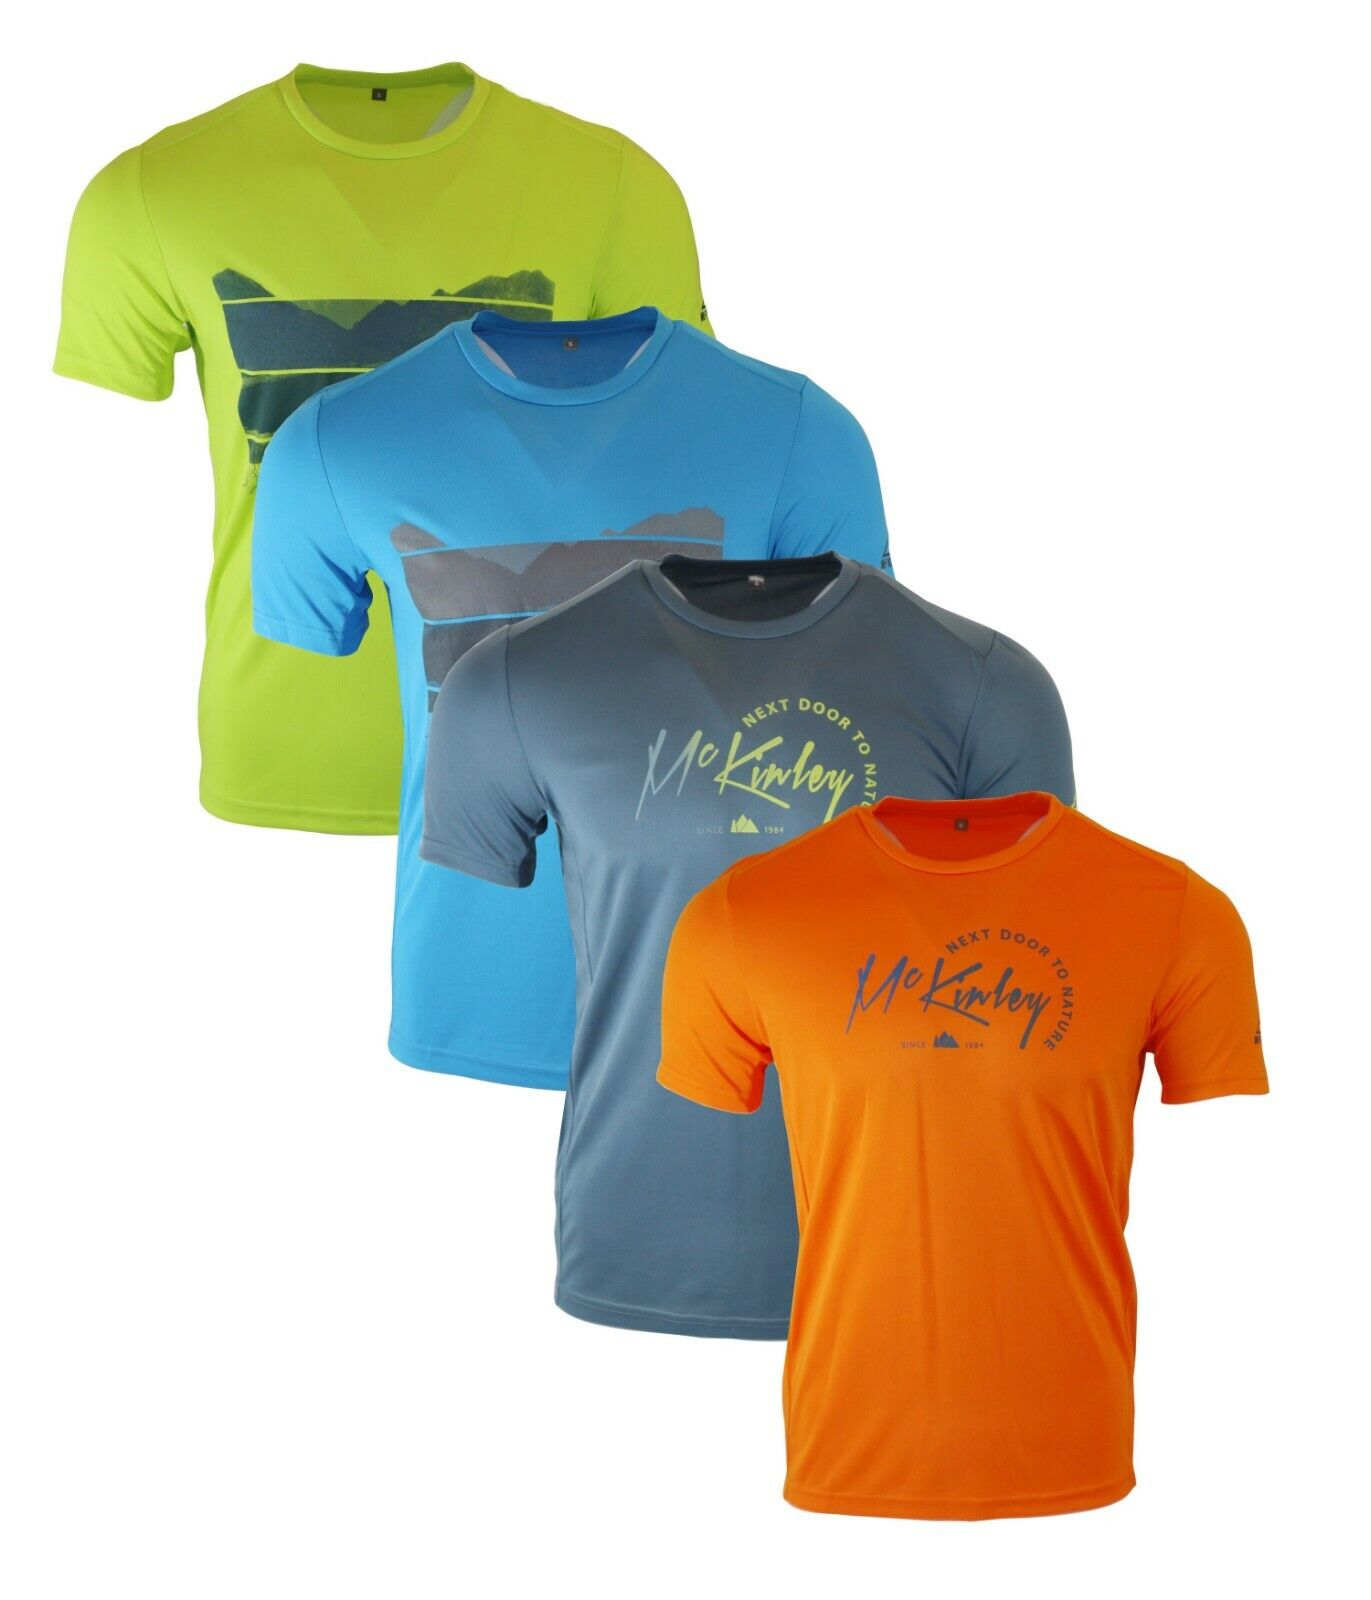 Mens Mc Kinley Active Athletic Fitness T Shirt Running Gym Sports Cool dry Tee